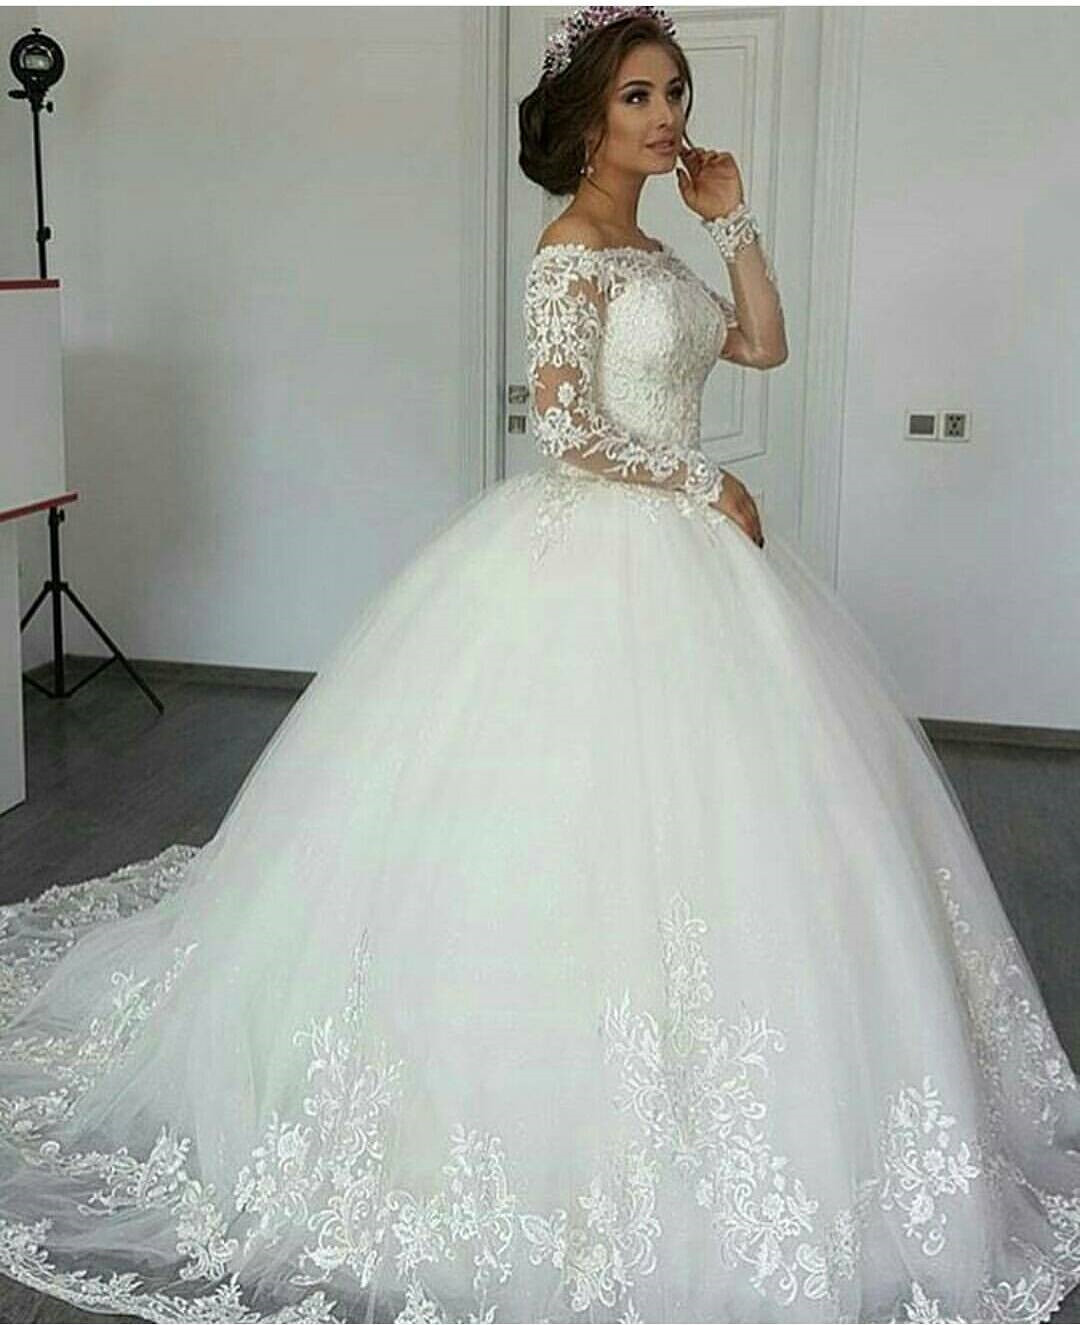 Long sleeve wedding dress ivory wedding dress wedding for Elegant wedding dresses with long sleeves